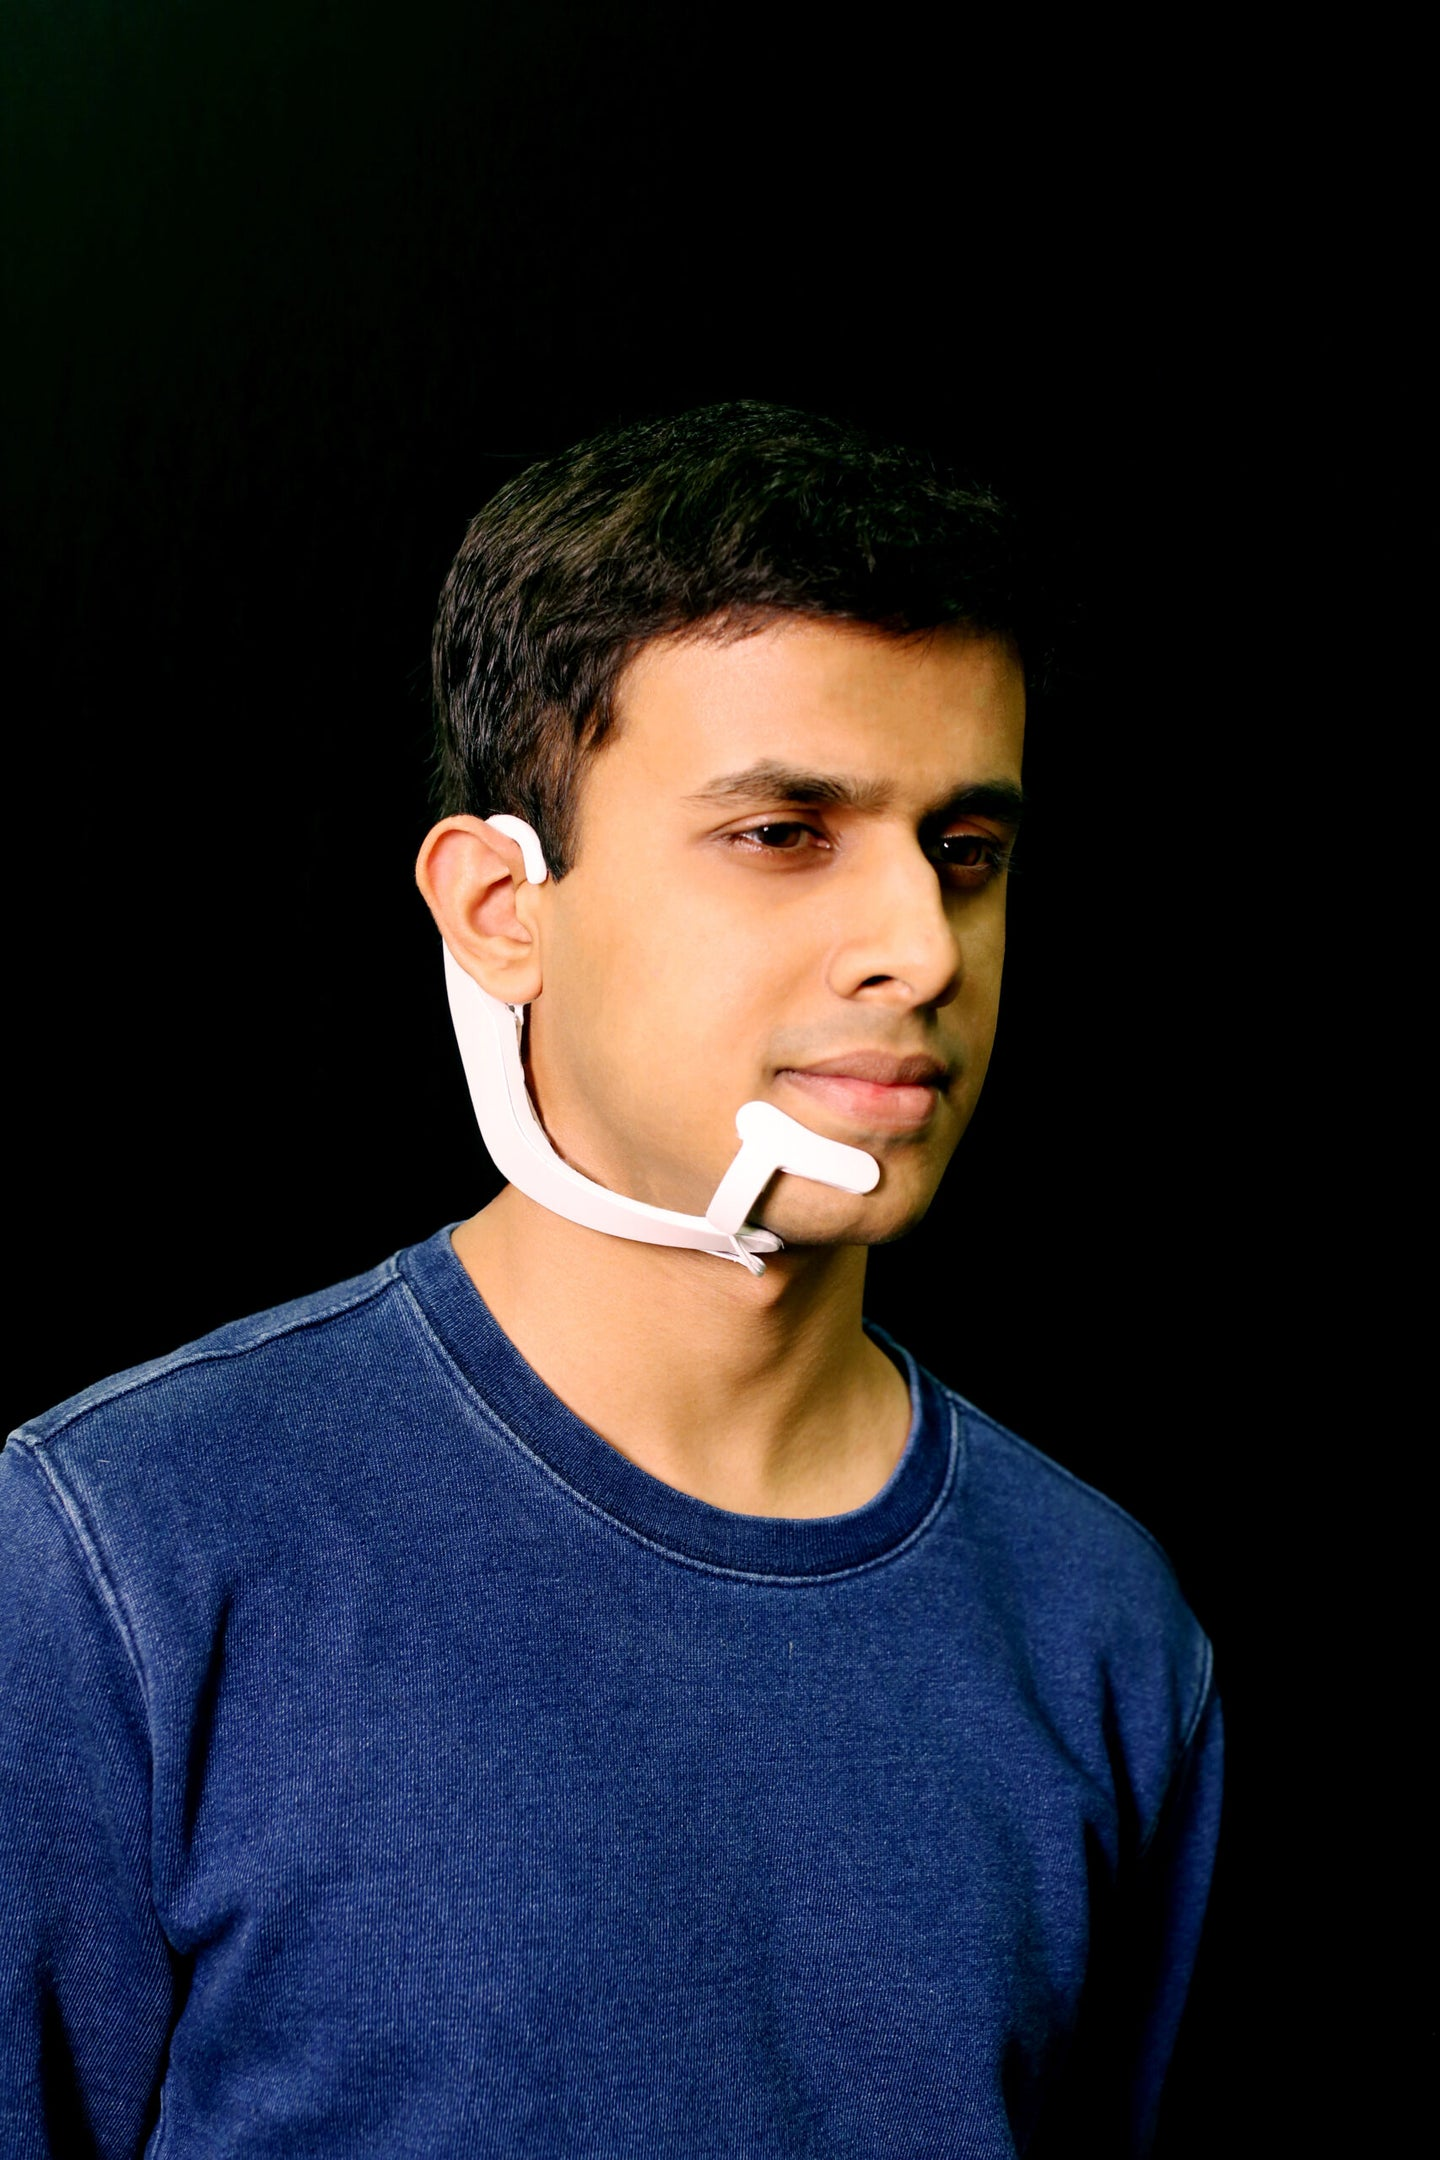 MIT is making a device that can 'hear' the words you say silently